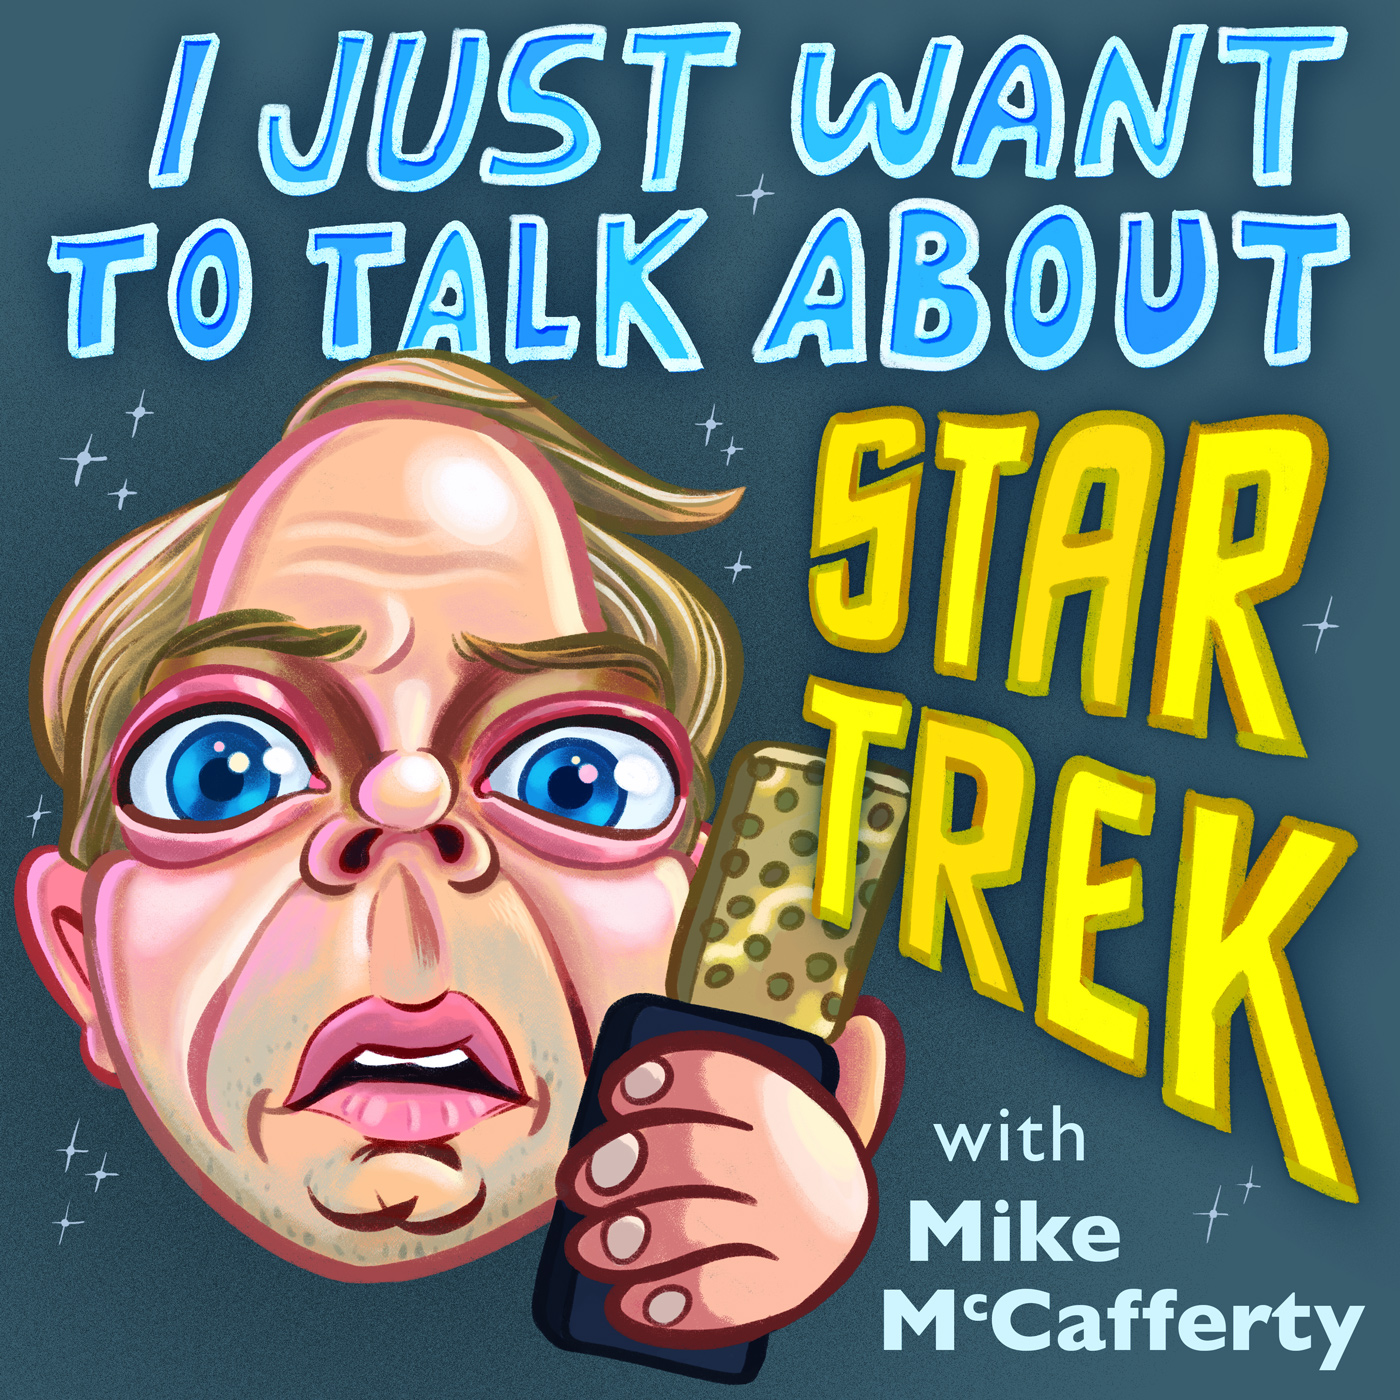 I Just Want To Talk About Star Trek with Mike McCafferty Podcast Cover - Square